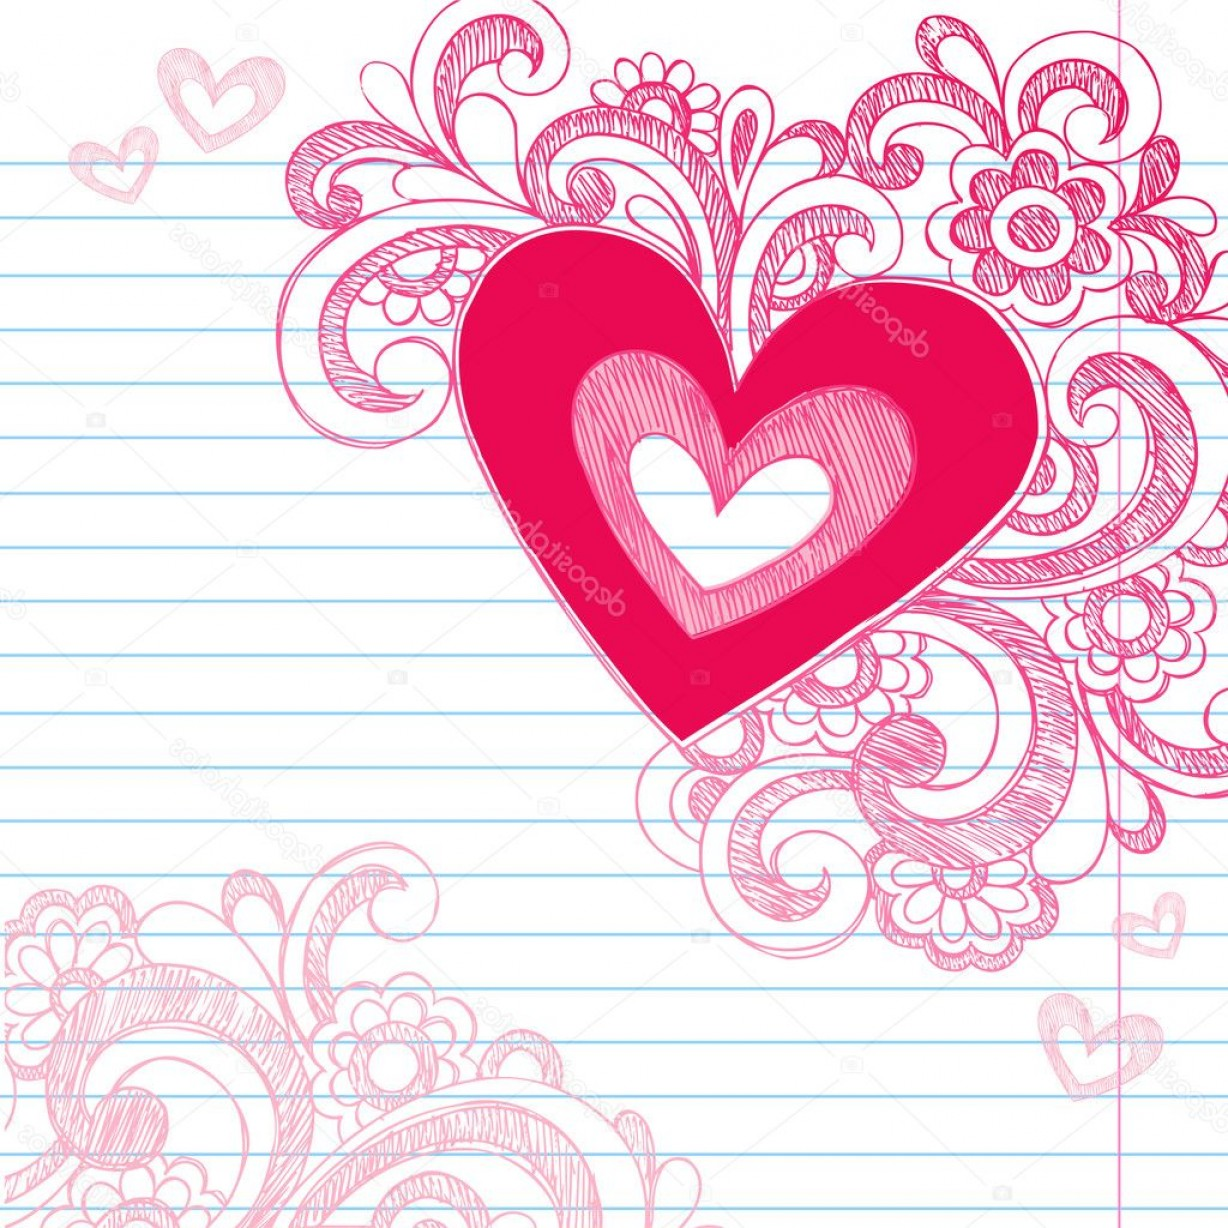 Love Heart Swirl Vector: Stock Illustration Heart Love Sketchy Doodle Swirls